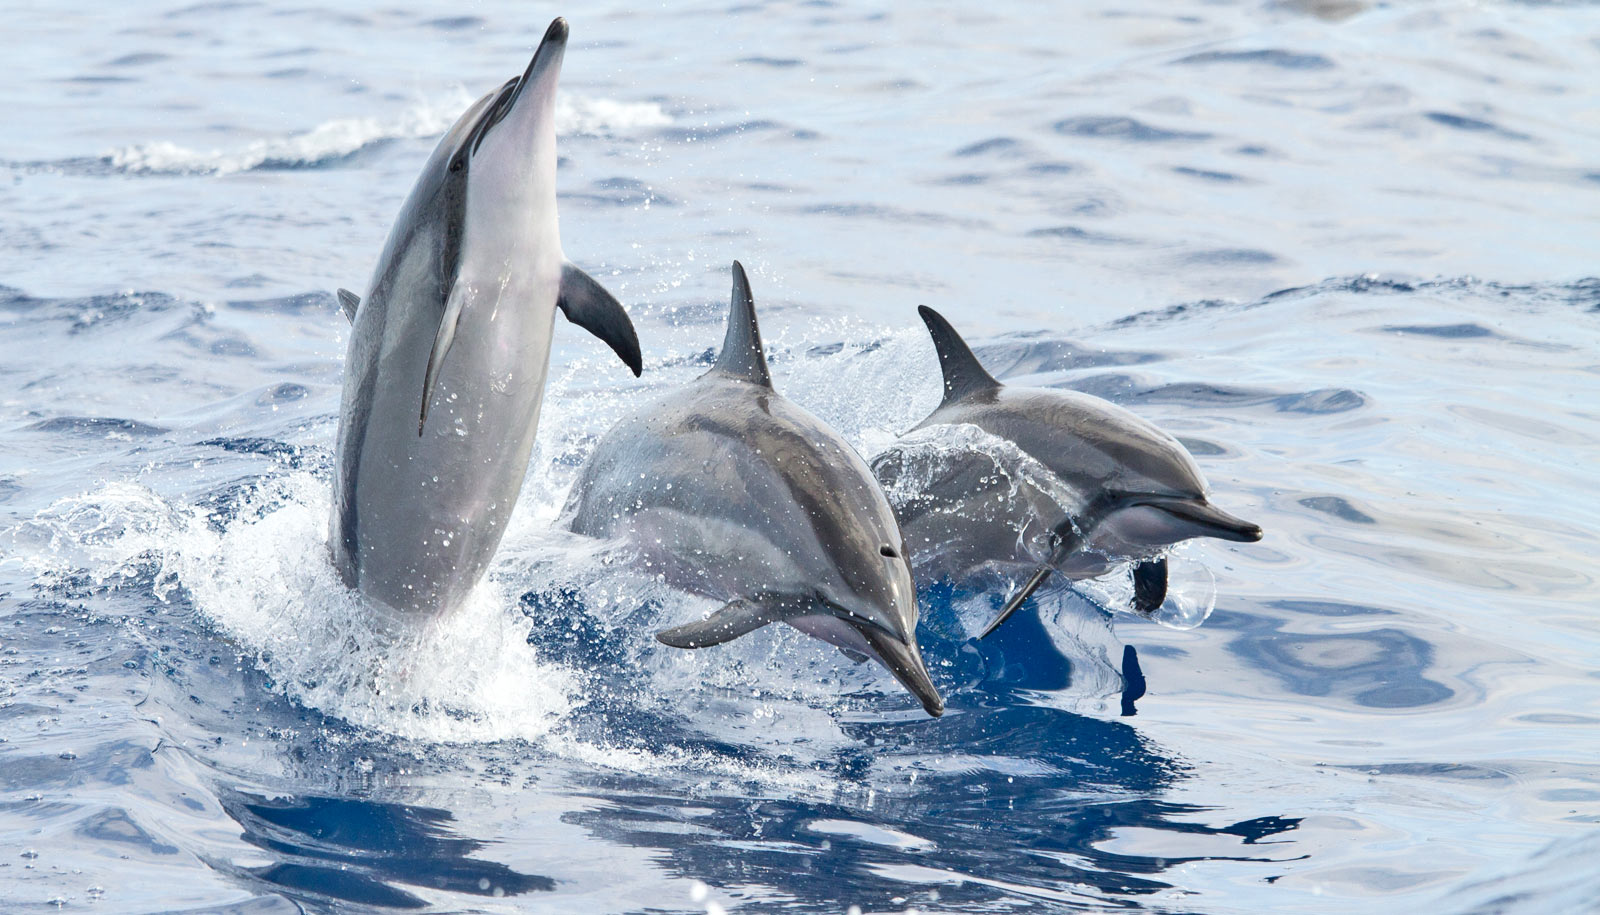 Noisy humans rob spinner dolphins of their rest - Futurity